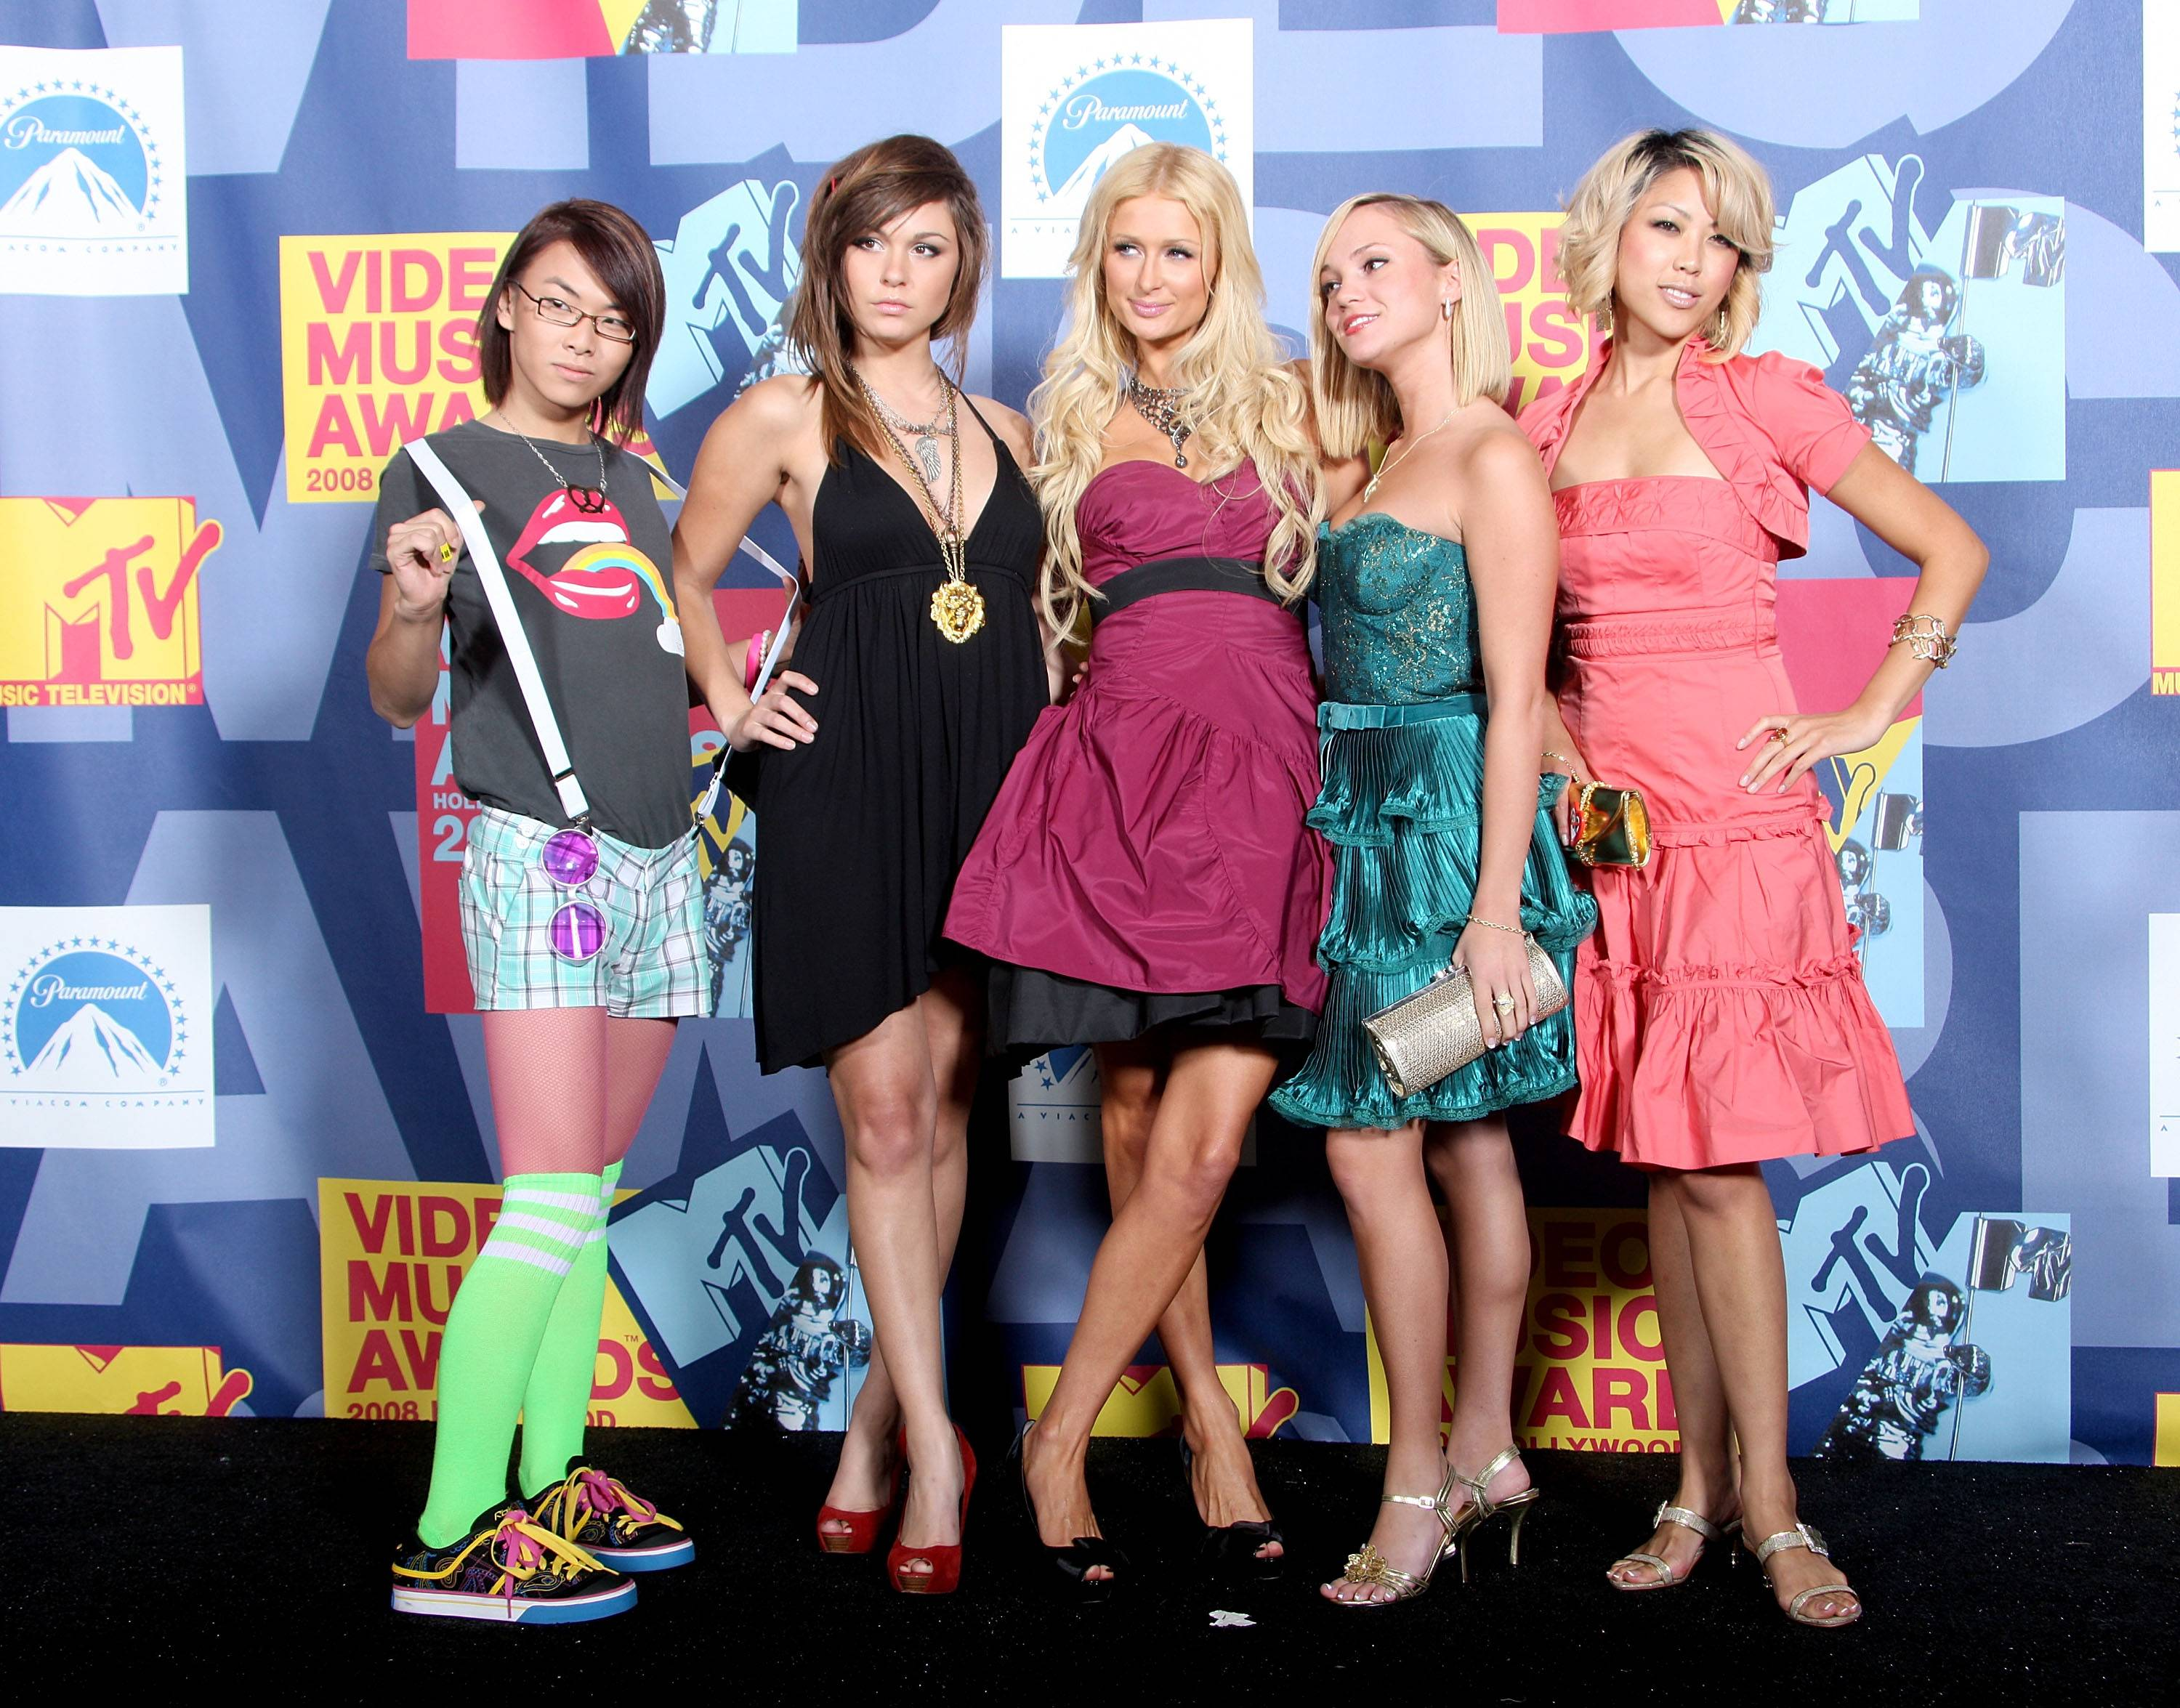 Paris Hilton and a few of her new BFFs at the 2008 MTV Video Music Awards in Hollywood.